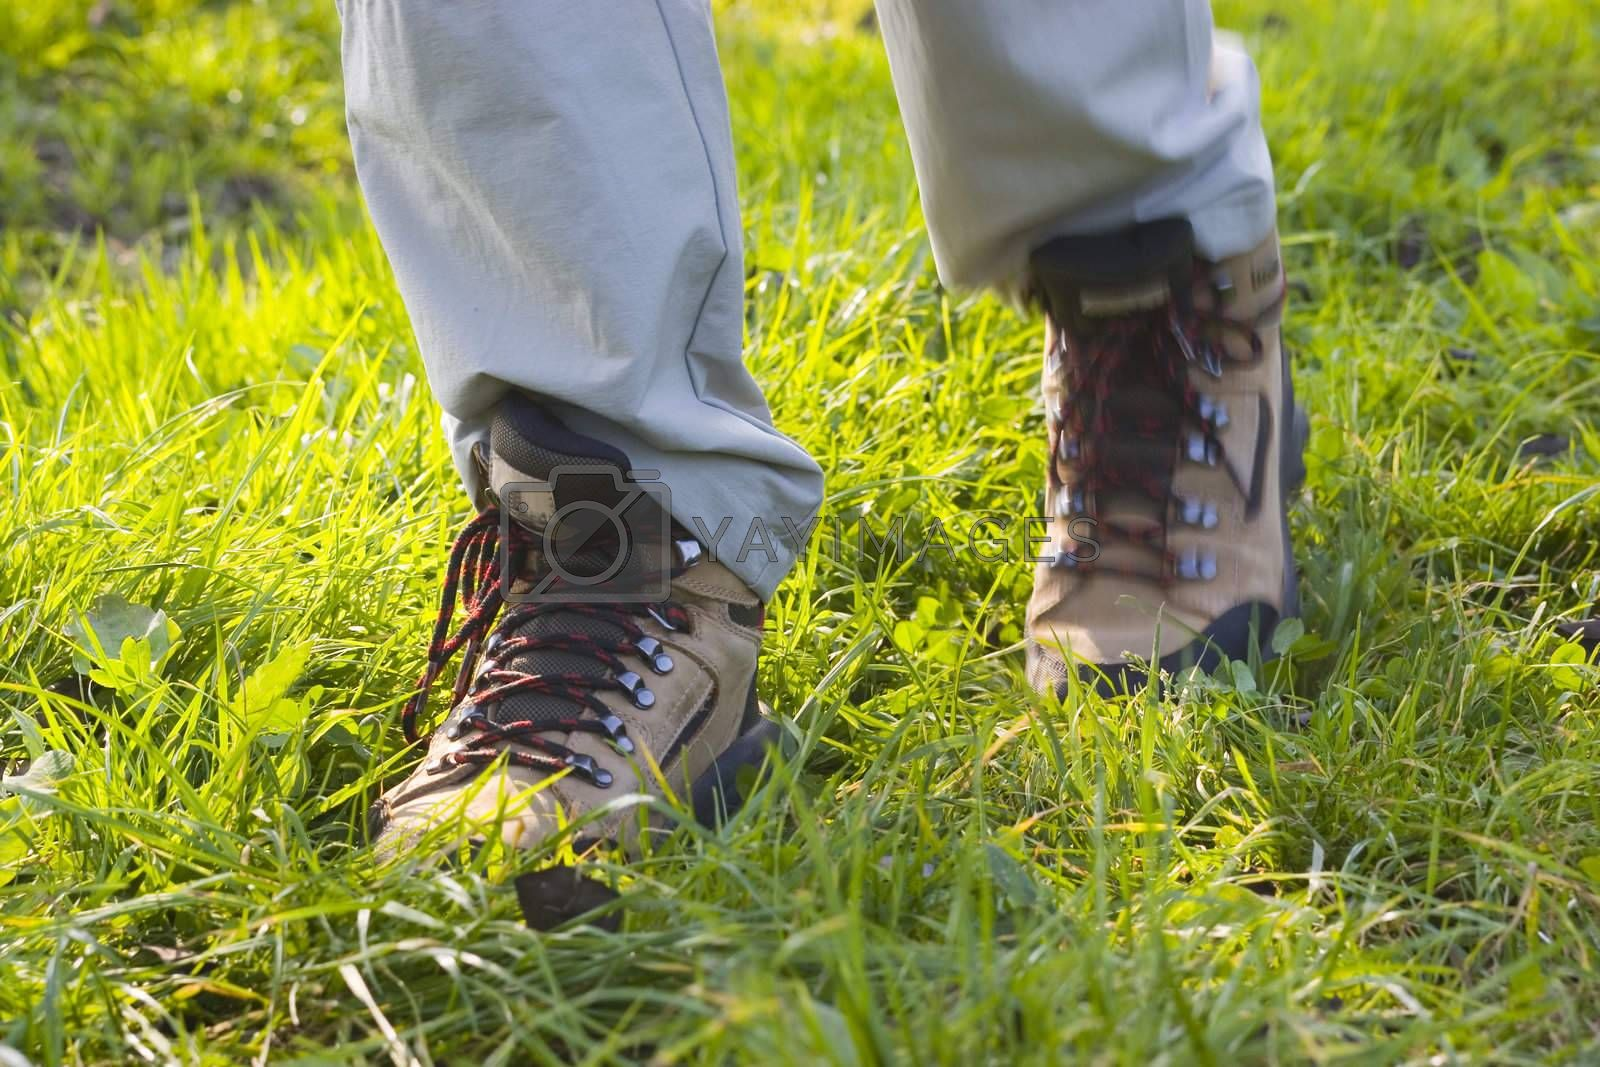 Hiking feets in green grass